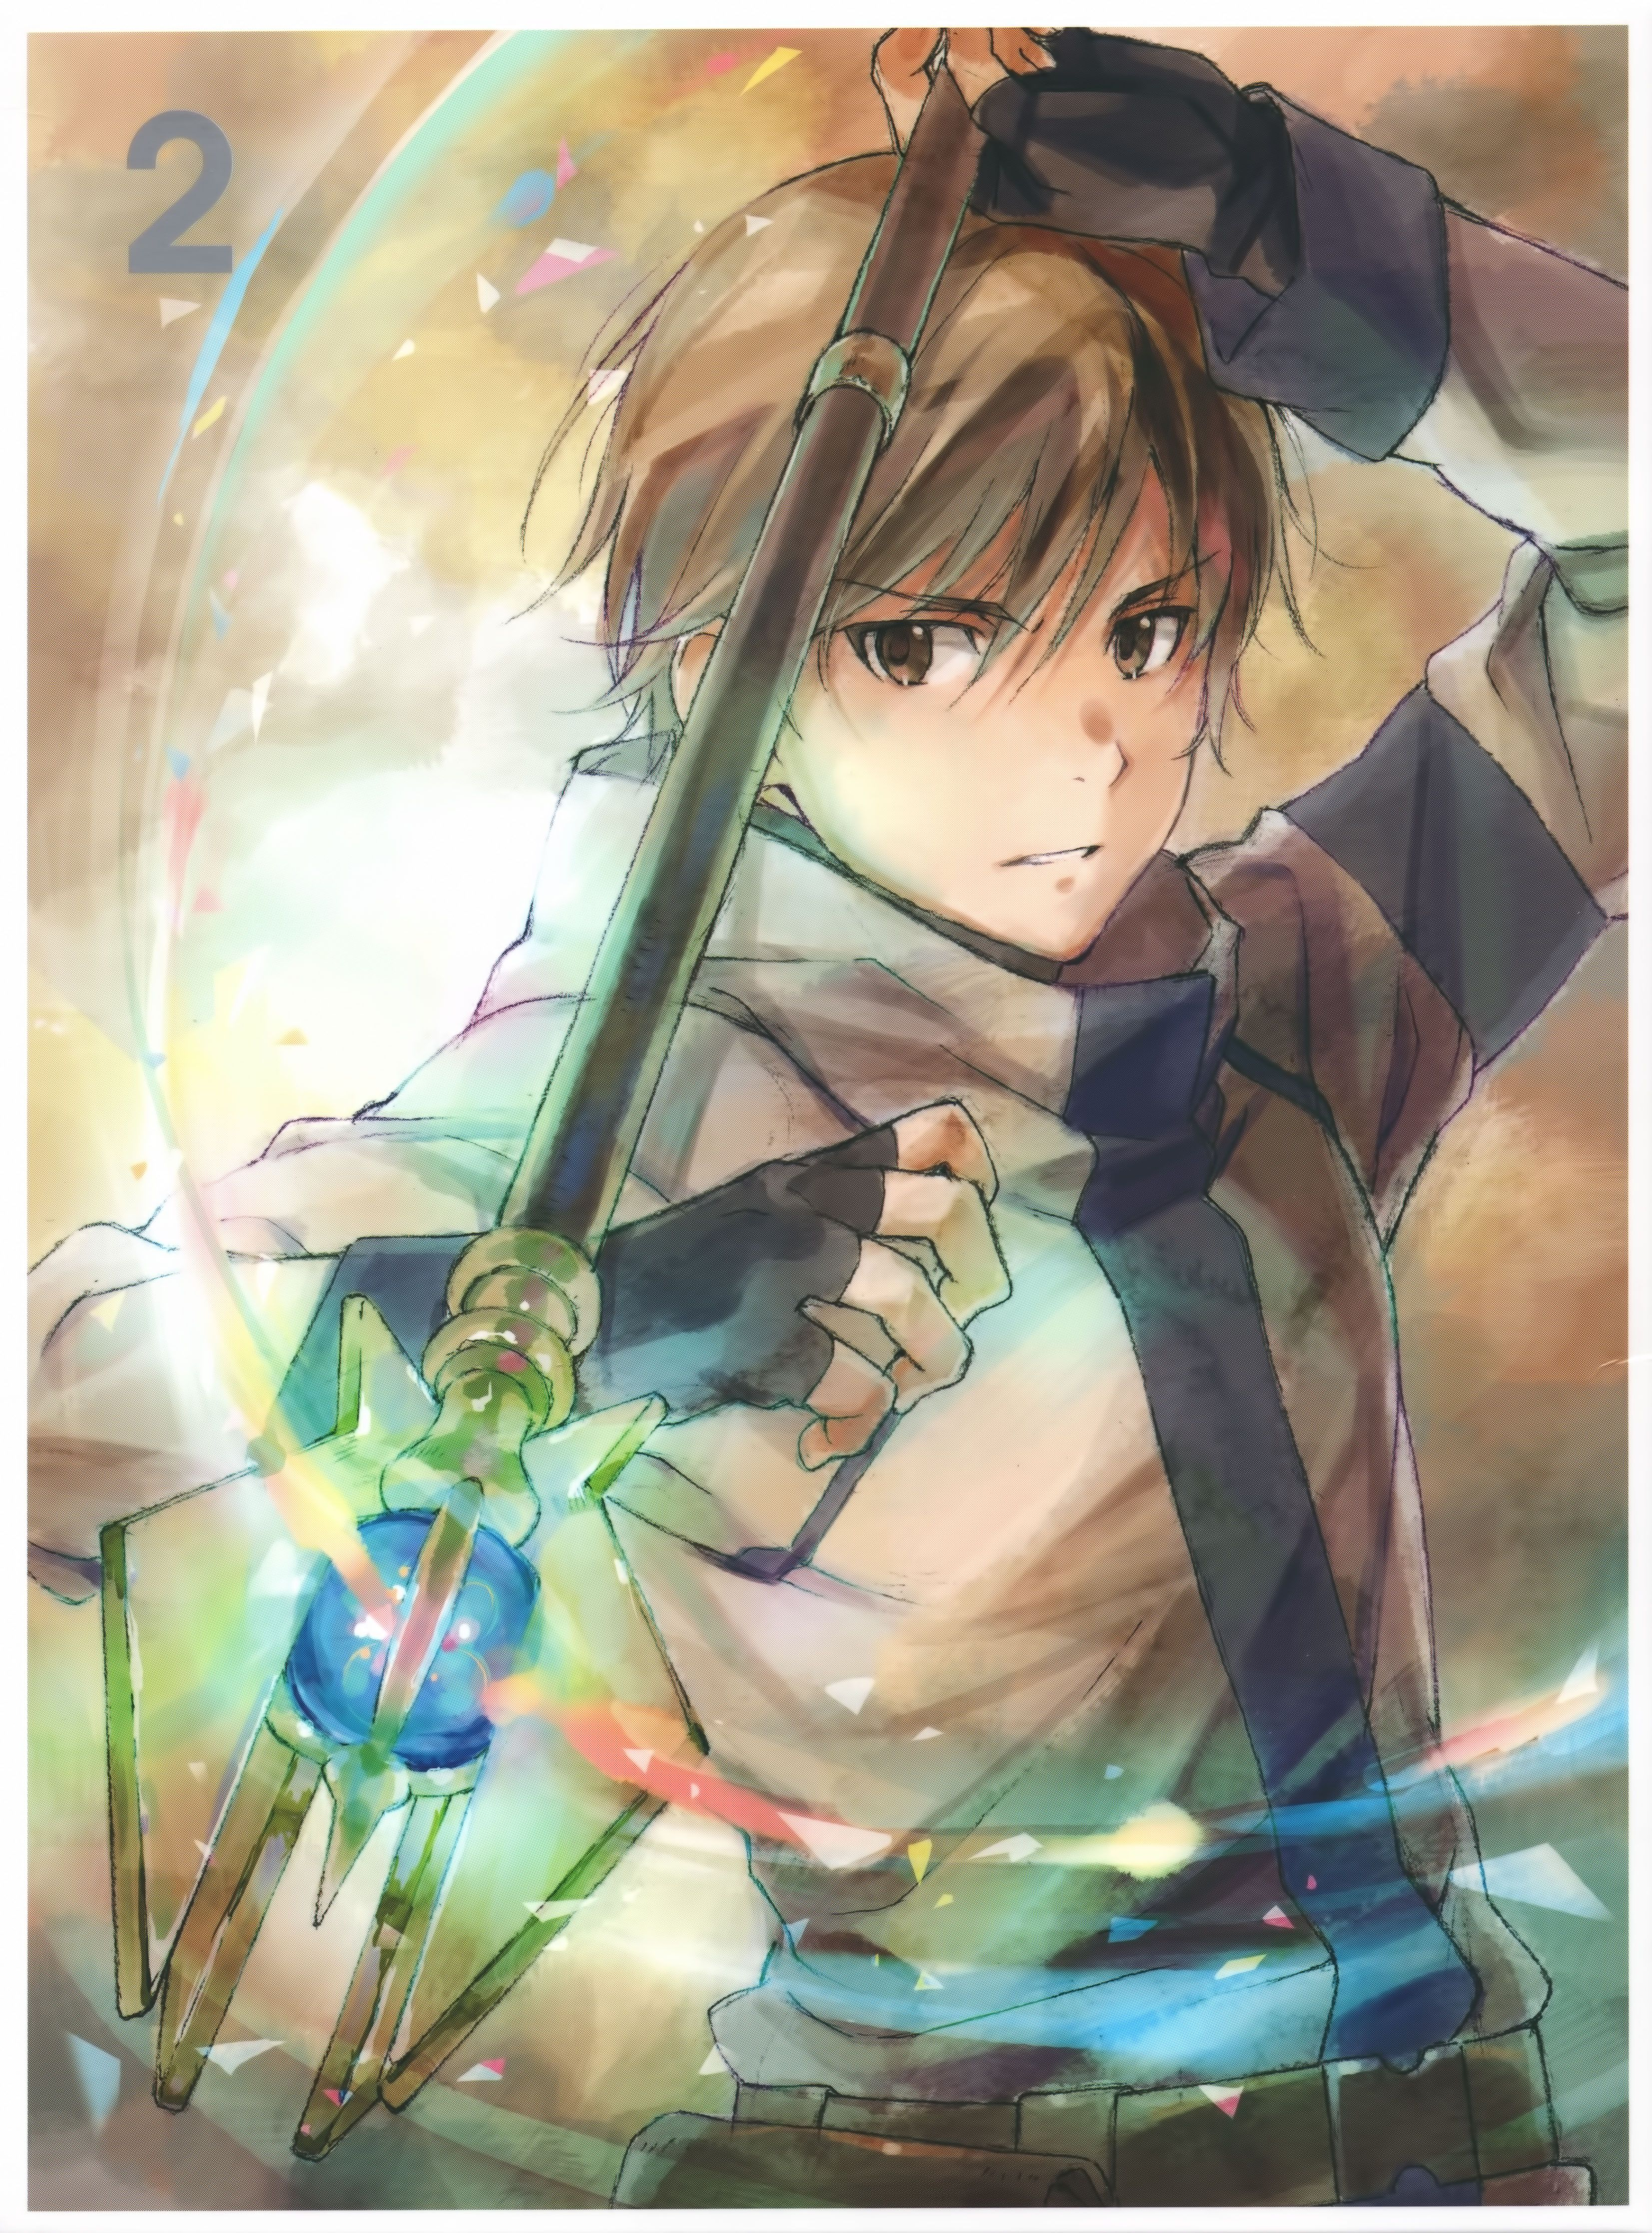 Manato Hai To Gensou No Grimgar O Grimgar Of Fantasy And Ash Acción Aventura Drama Fantasía Anime Invierno 2016 Anime Anime Artwork Anime Images